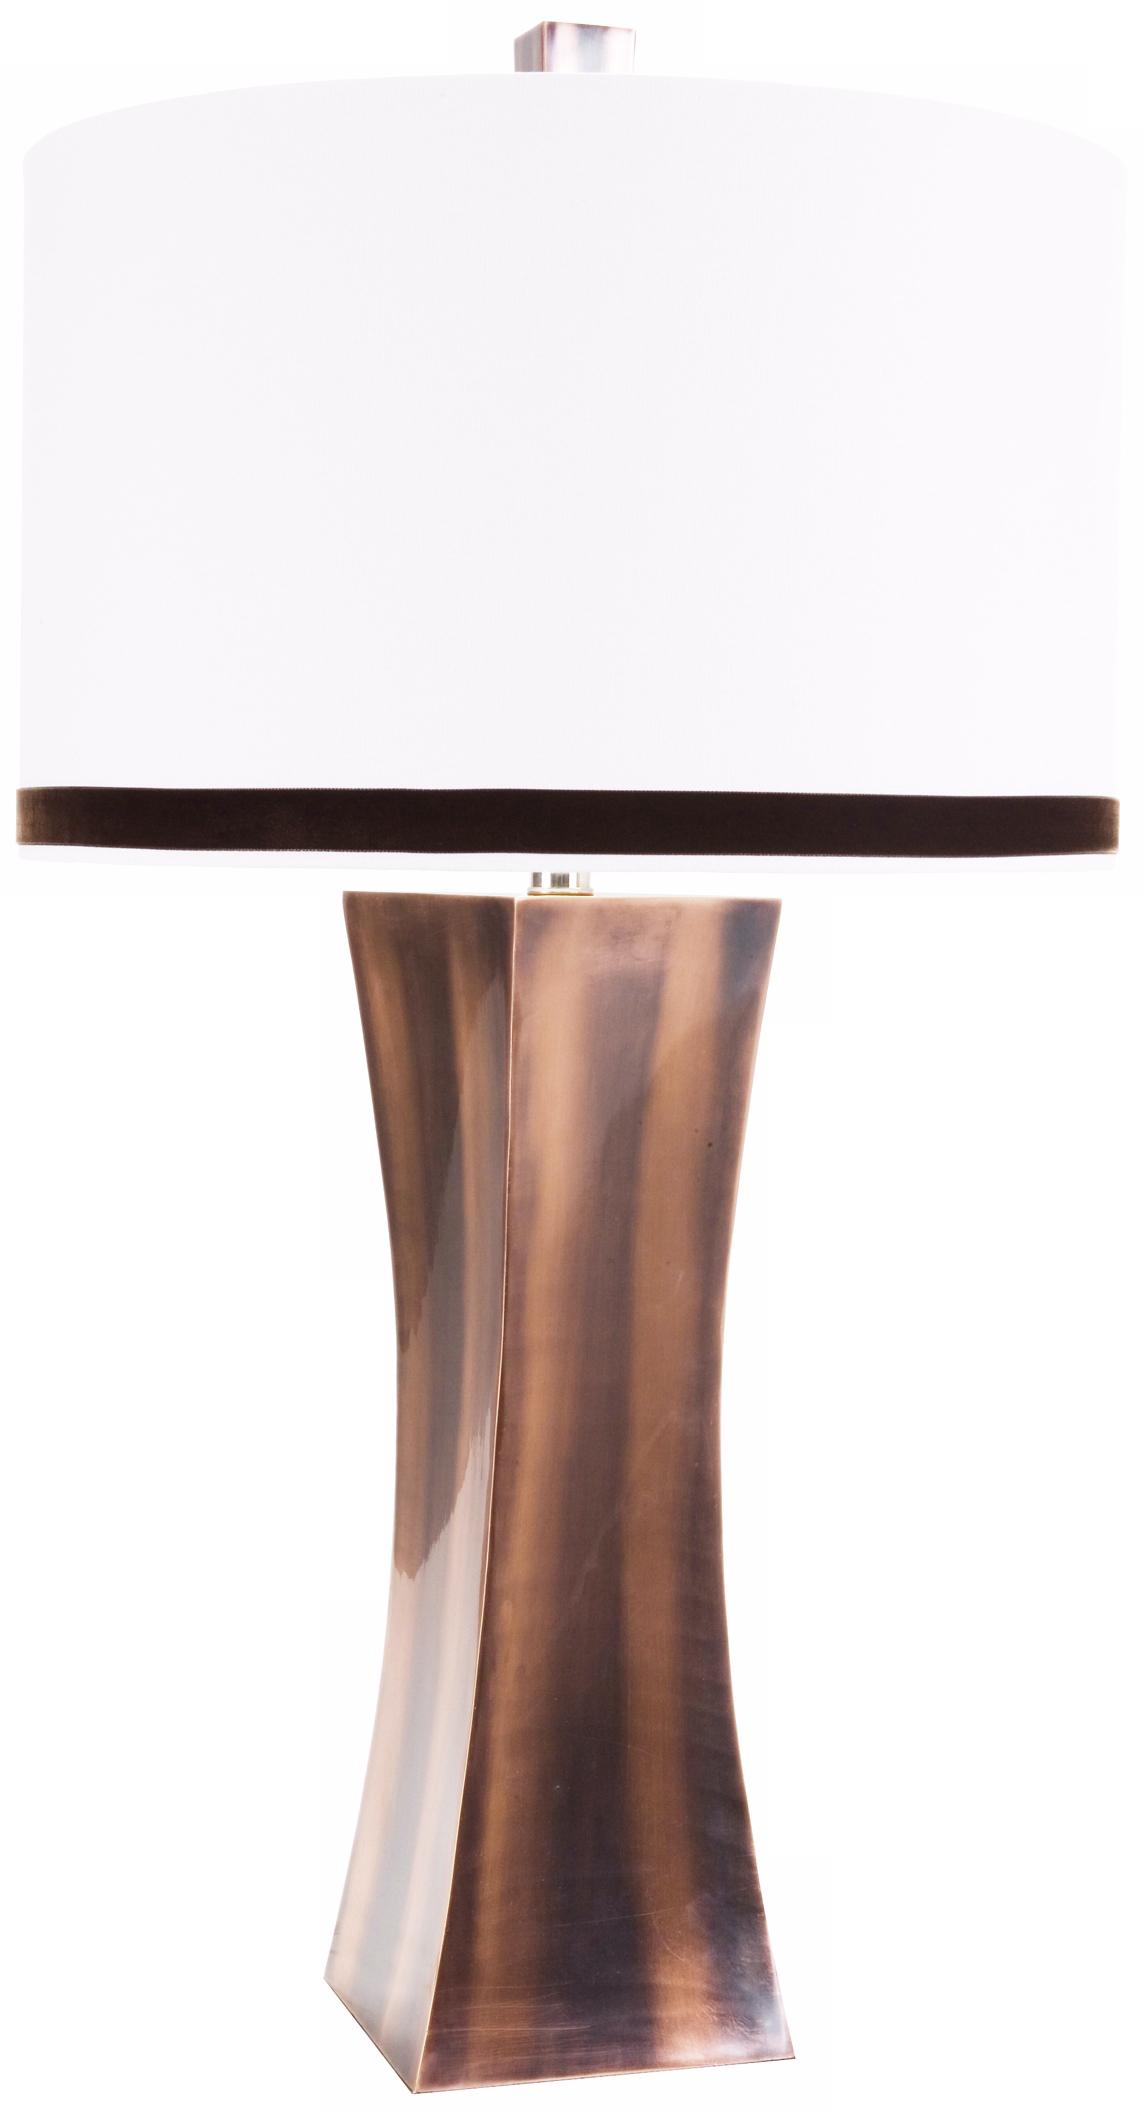 Frederick Cooper Newport II Table Lamp (N9851)